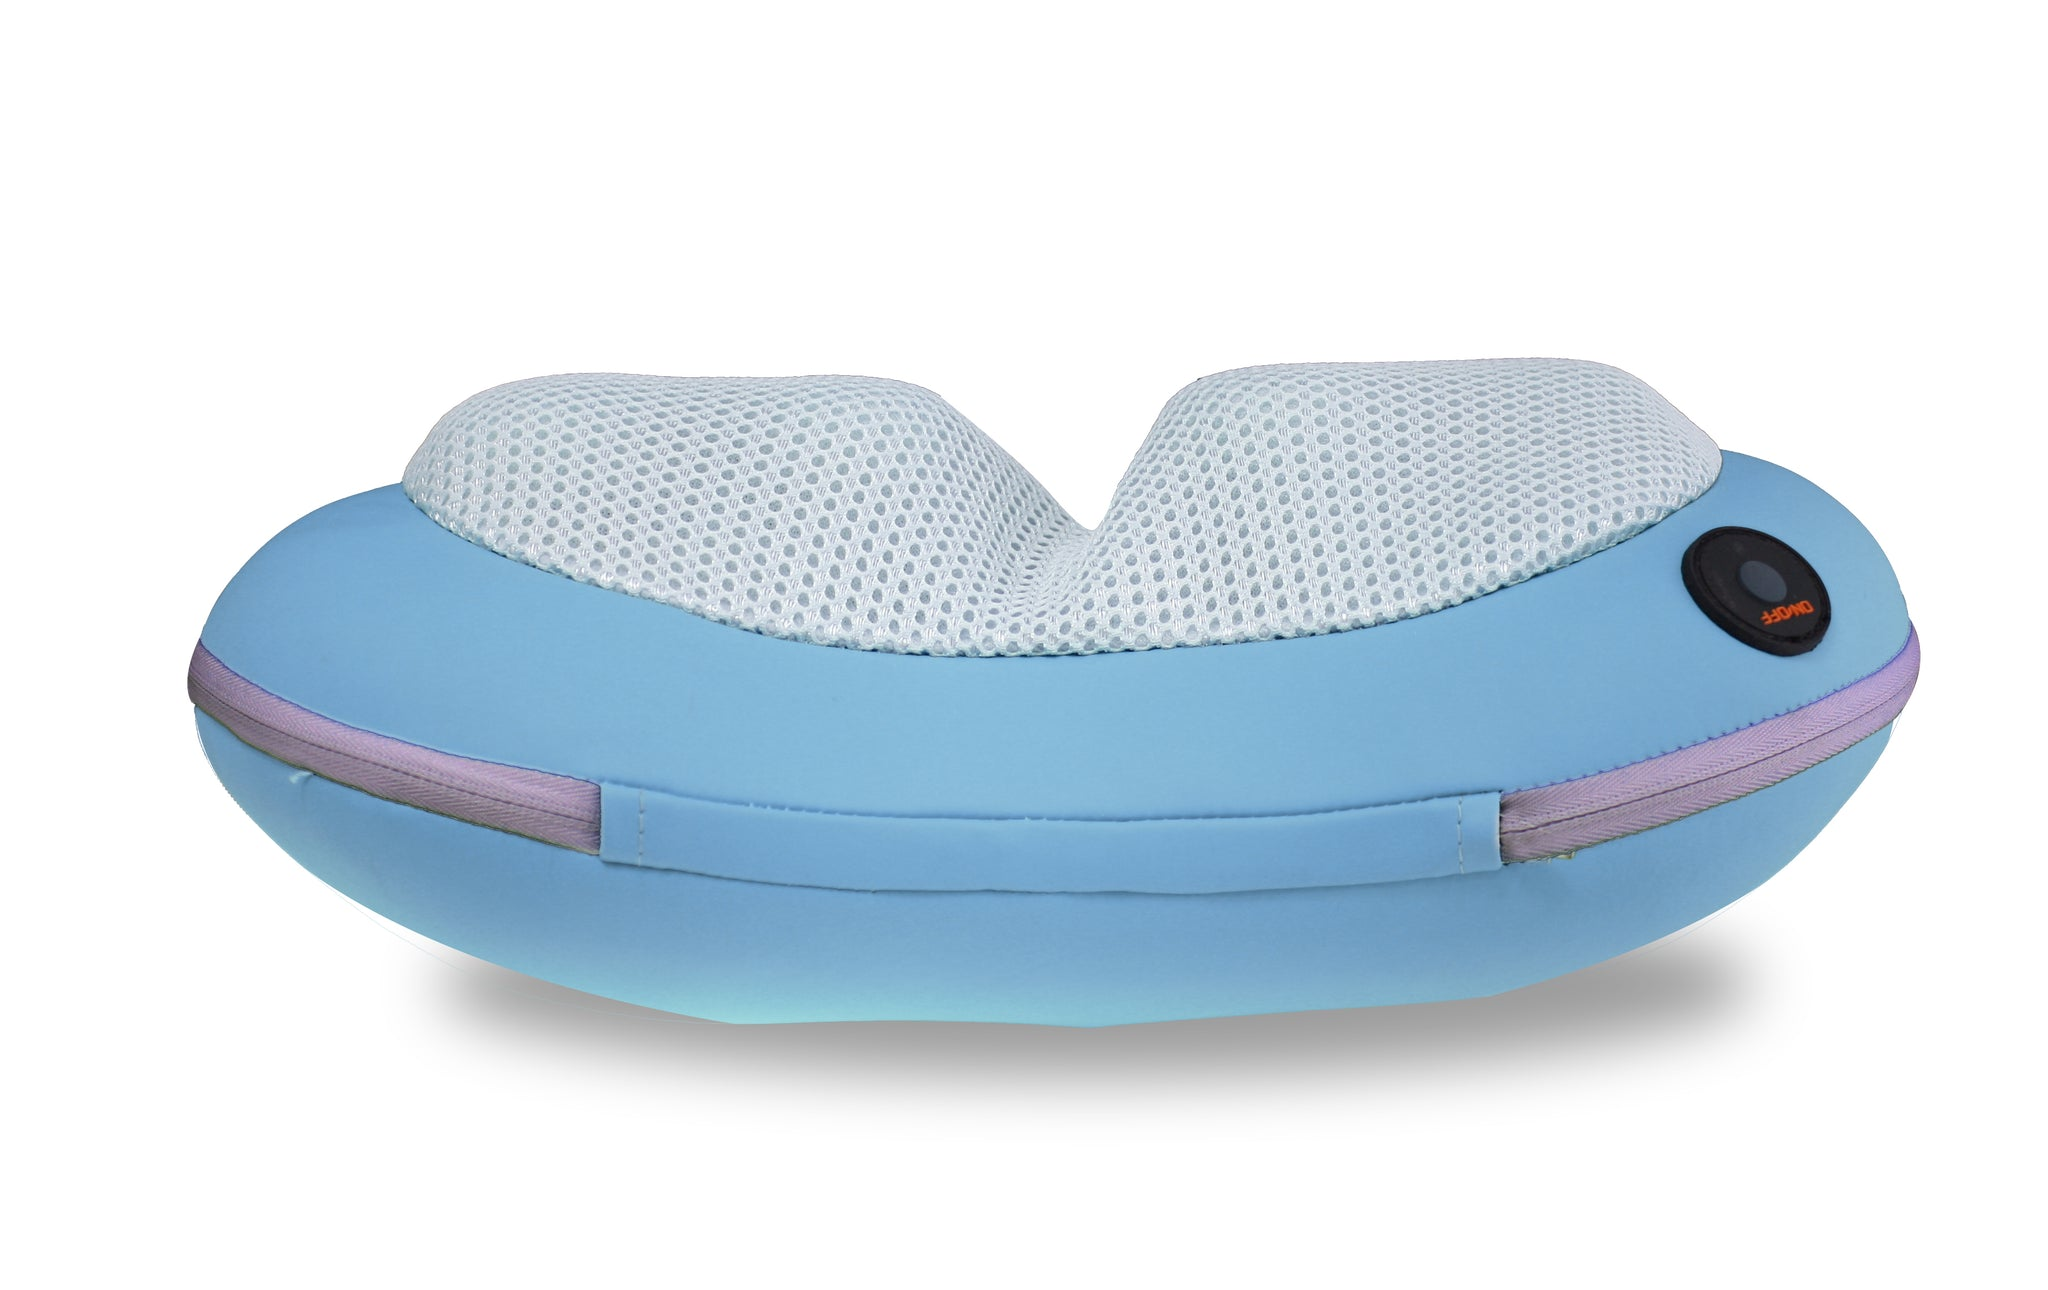 Breo EMK-129G Neck Pillow Massager - OBM Distribution, Inc.